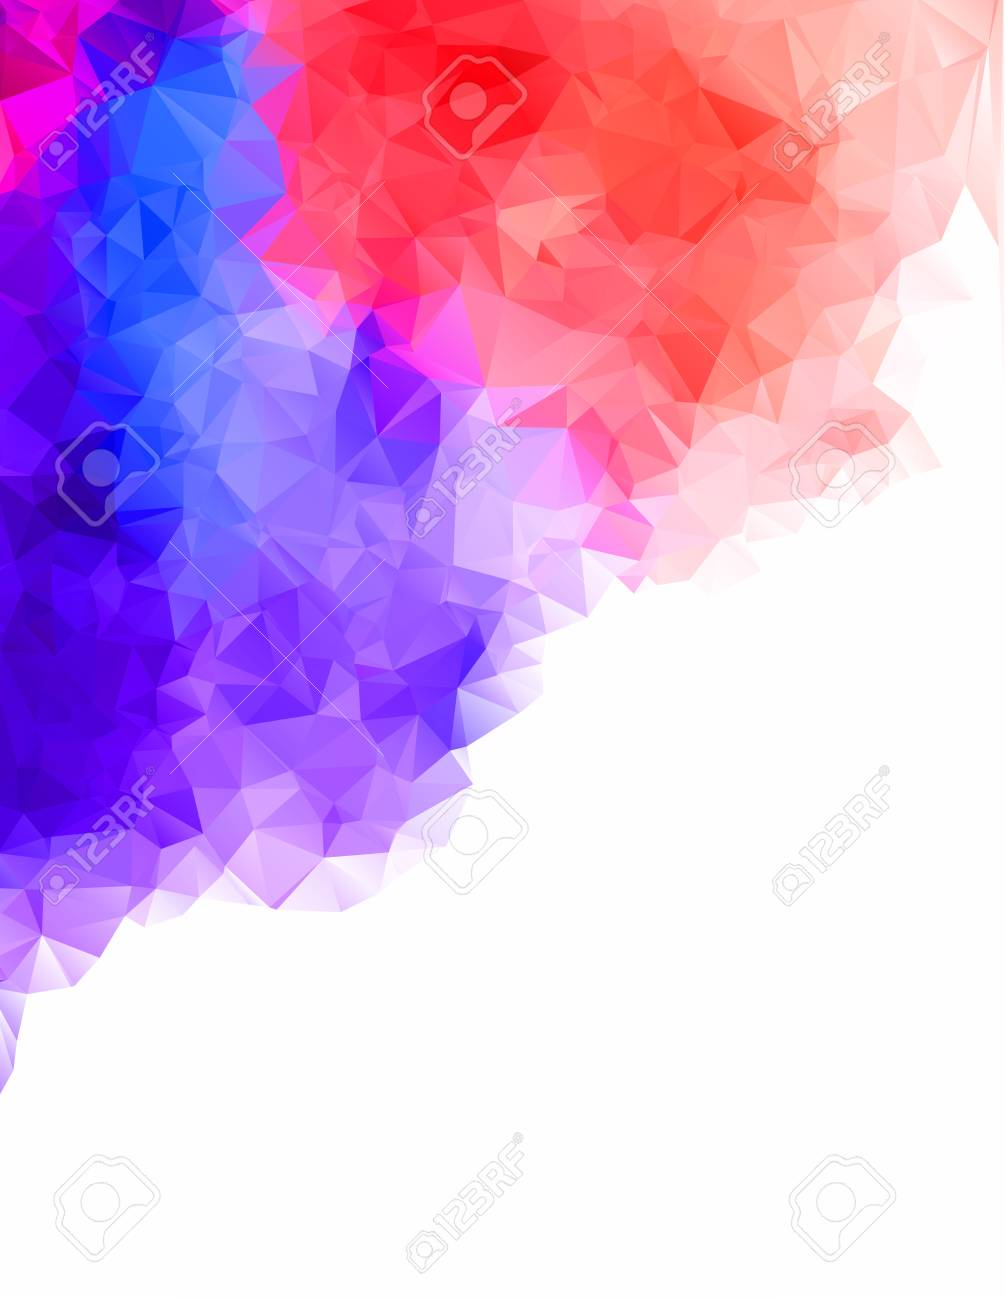 Abstract Geometric Colorful Background Of Triangular Polygons